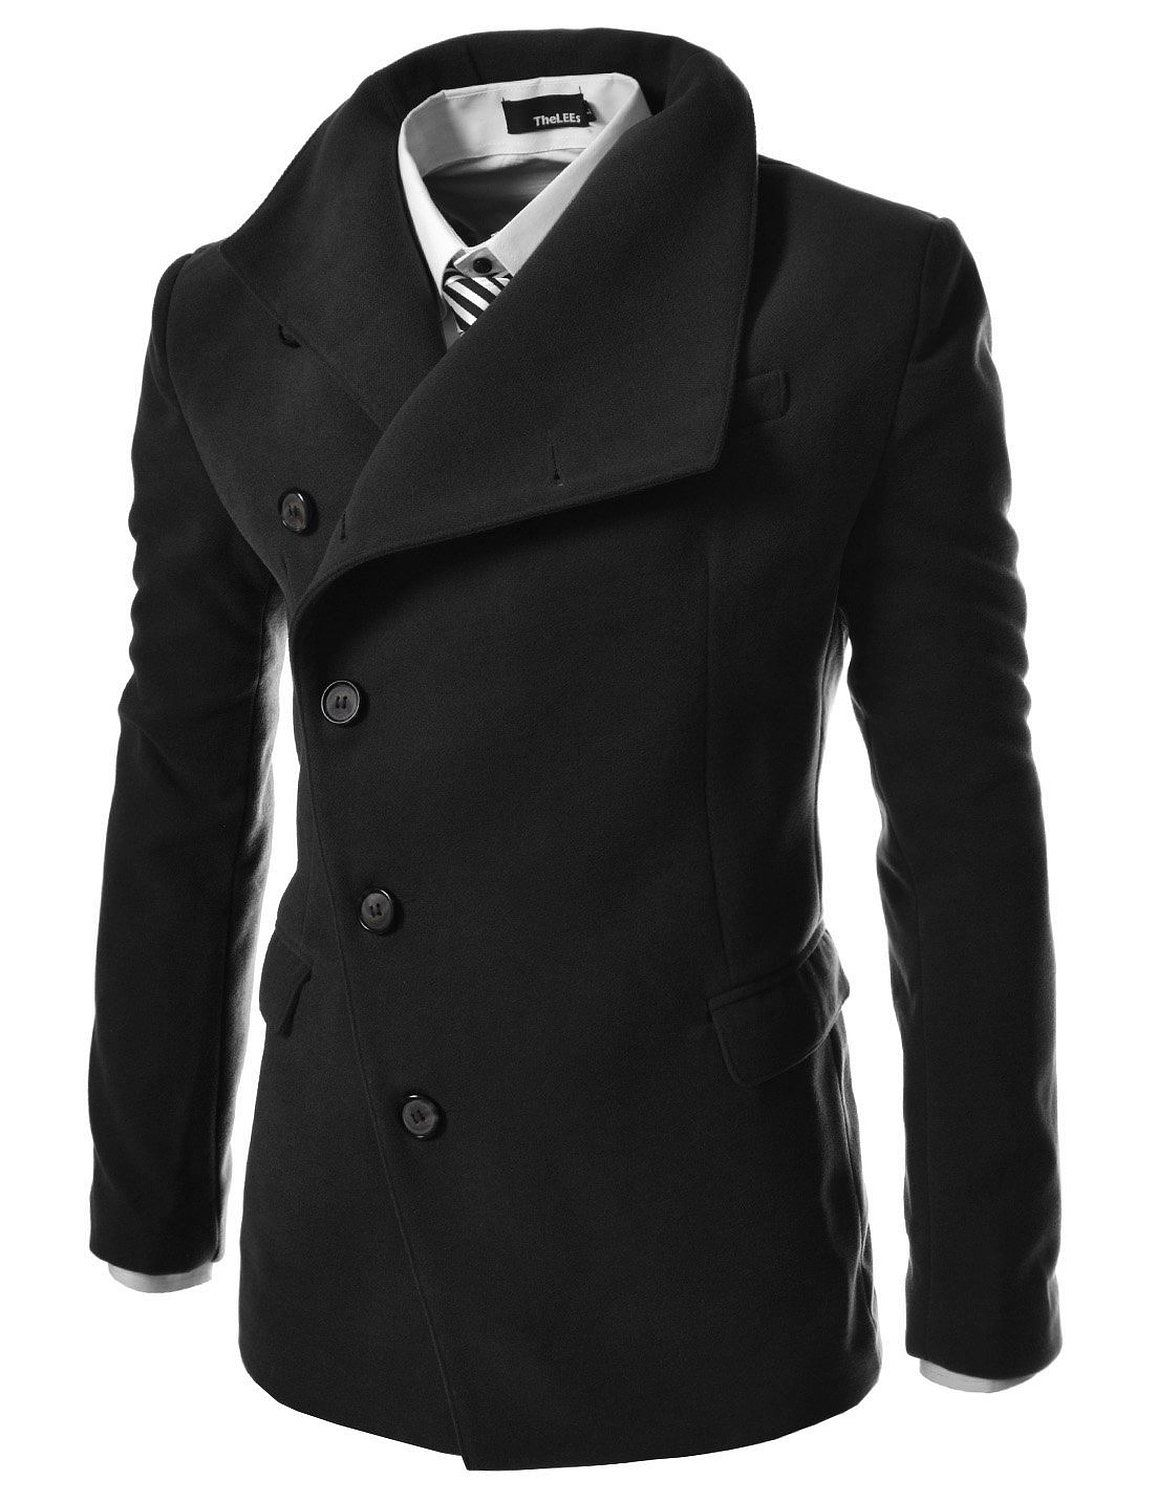 Thelees Men S Unbalance High Neck Slim Pea Coat At Amazon Men S Clothing Store Wool Outerwear Coats Well Dressed Men Mens Fashion Mens Outfits [ 1500 x 1154 Pixel ]